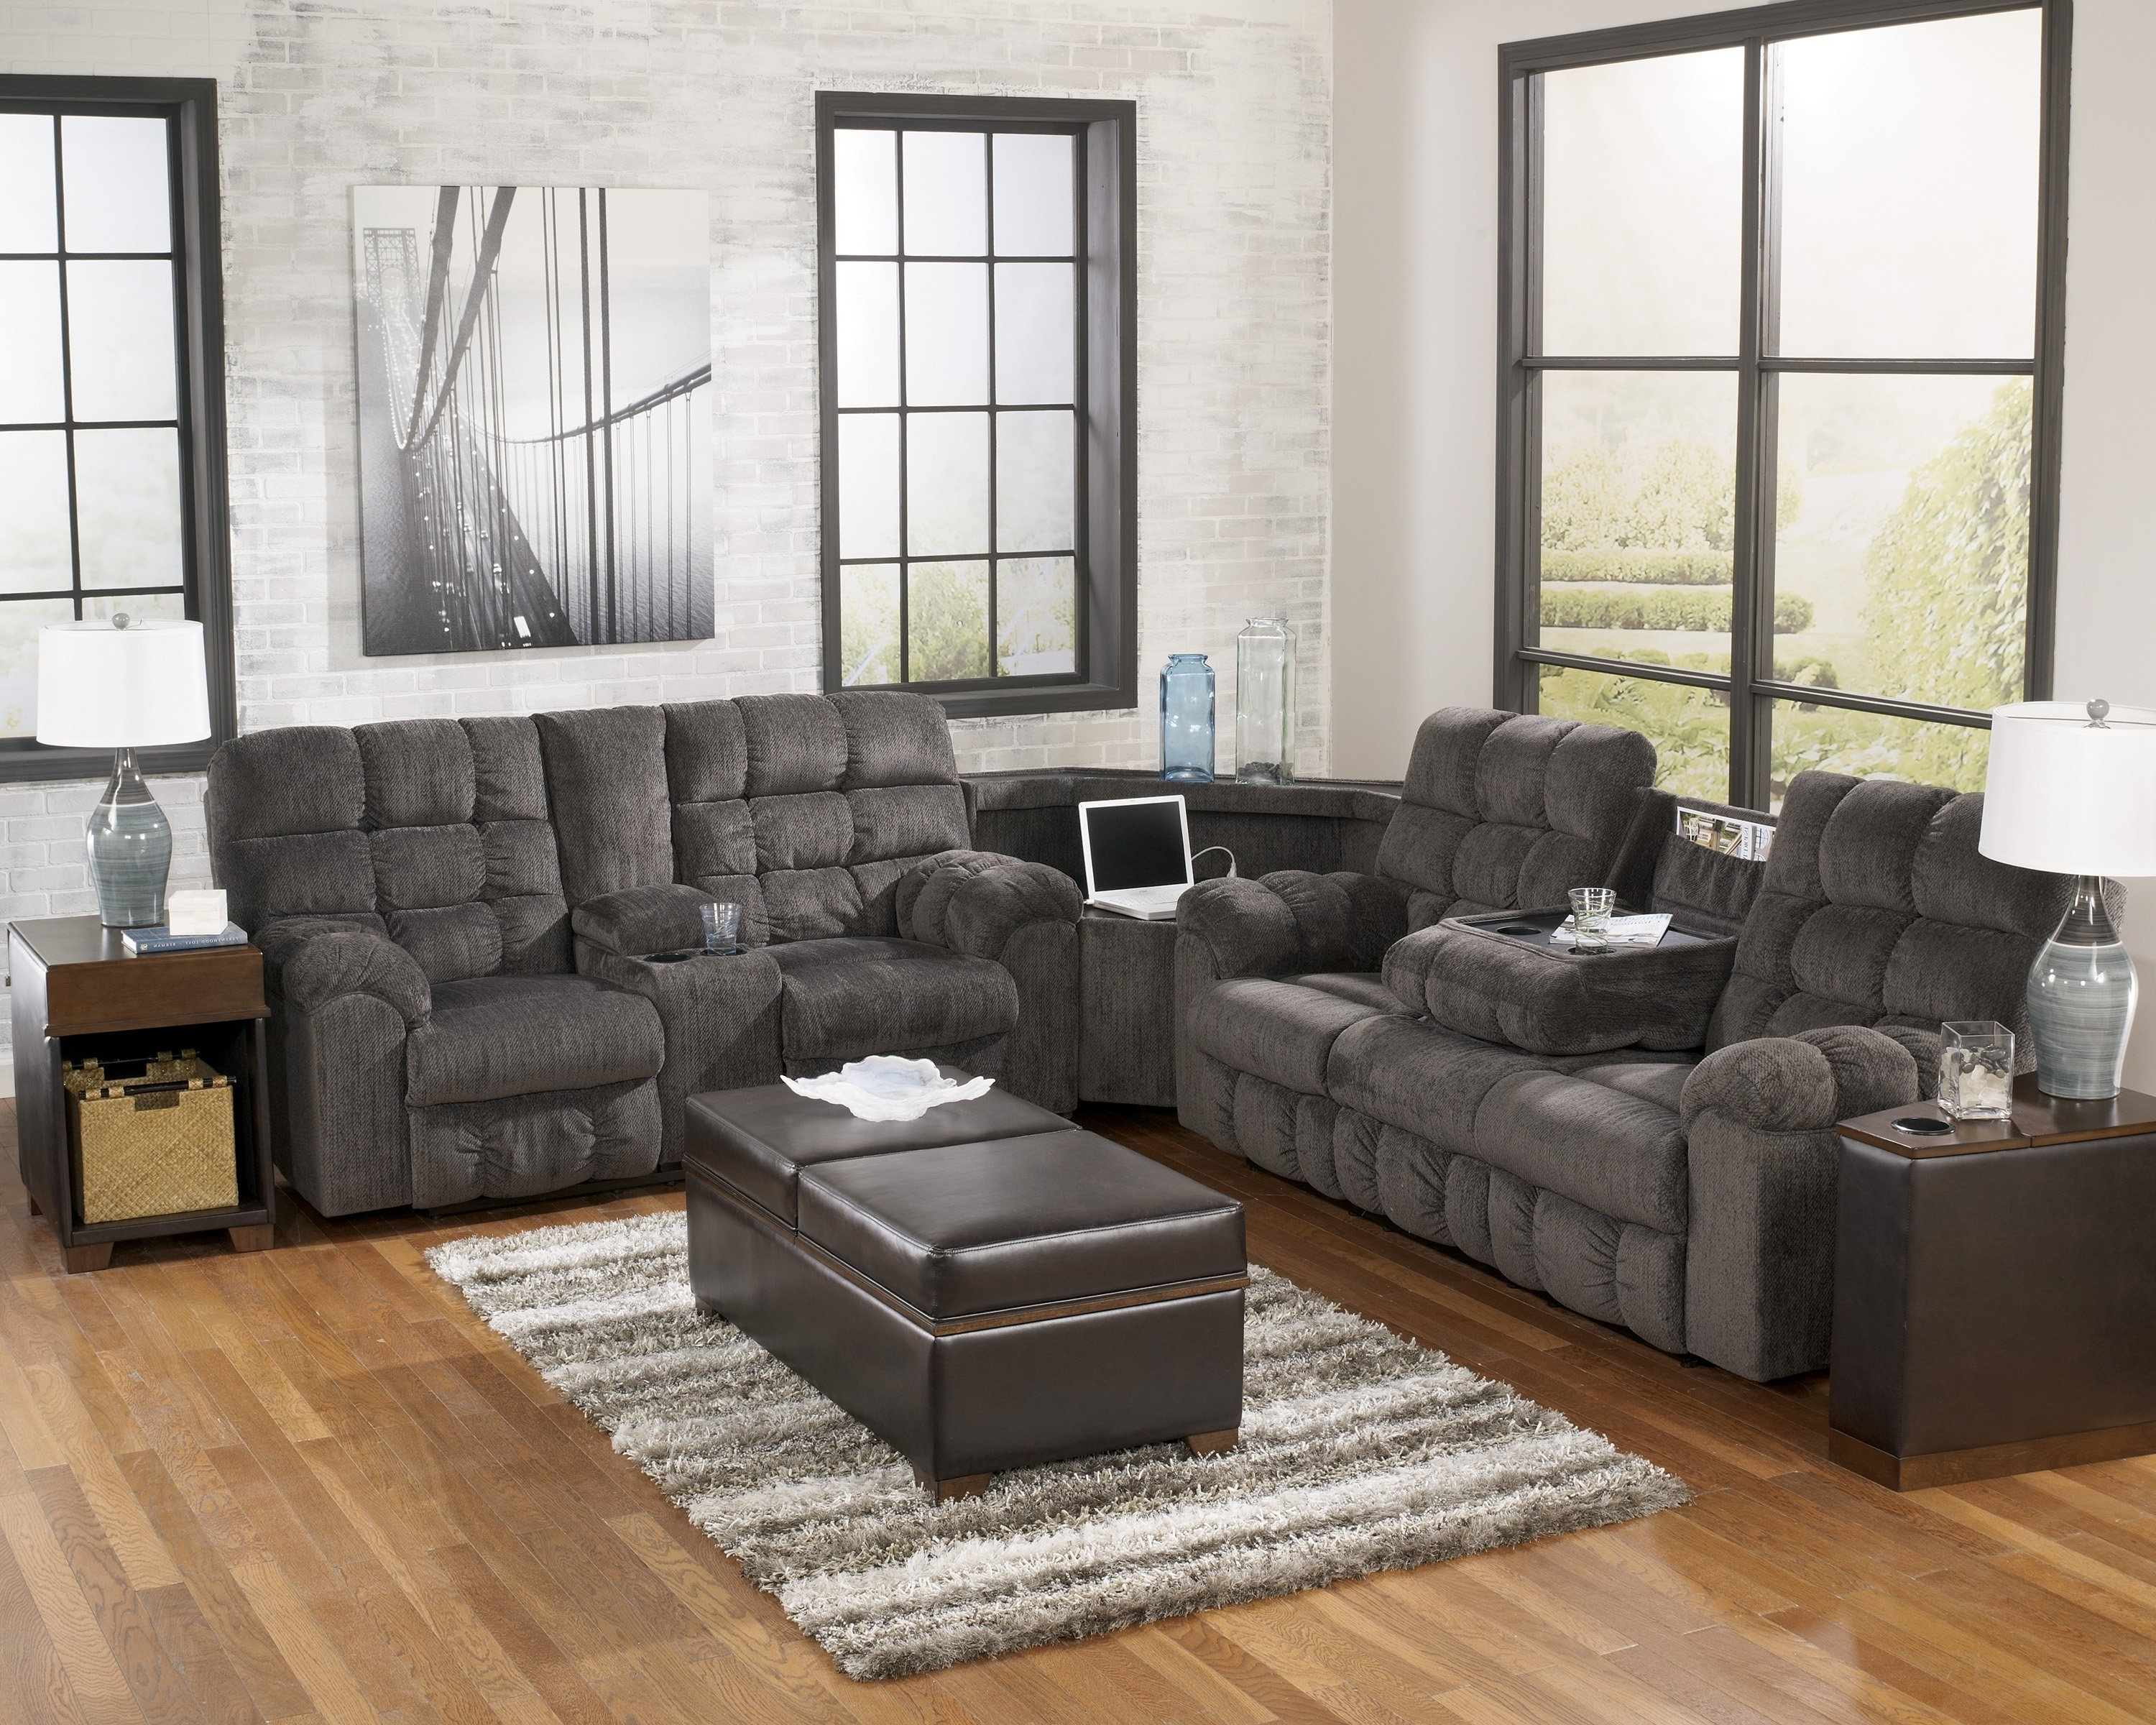 Well Liked Sectional Sofas At Ashley Furniture Pertaining To Sofas Center Sectional Sofas Ashley Furniture Excellent Faux For (View 8 of 20)